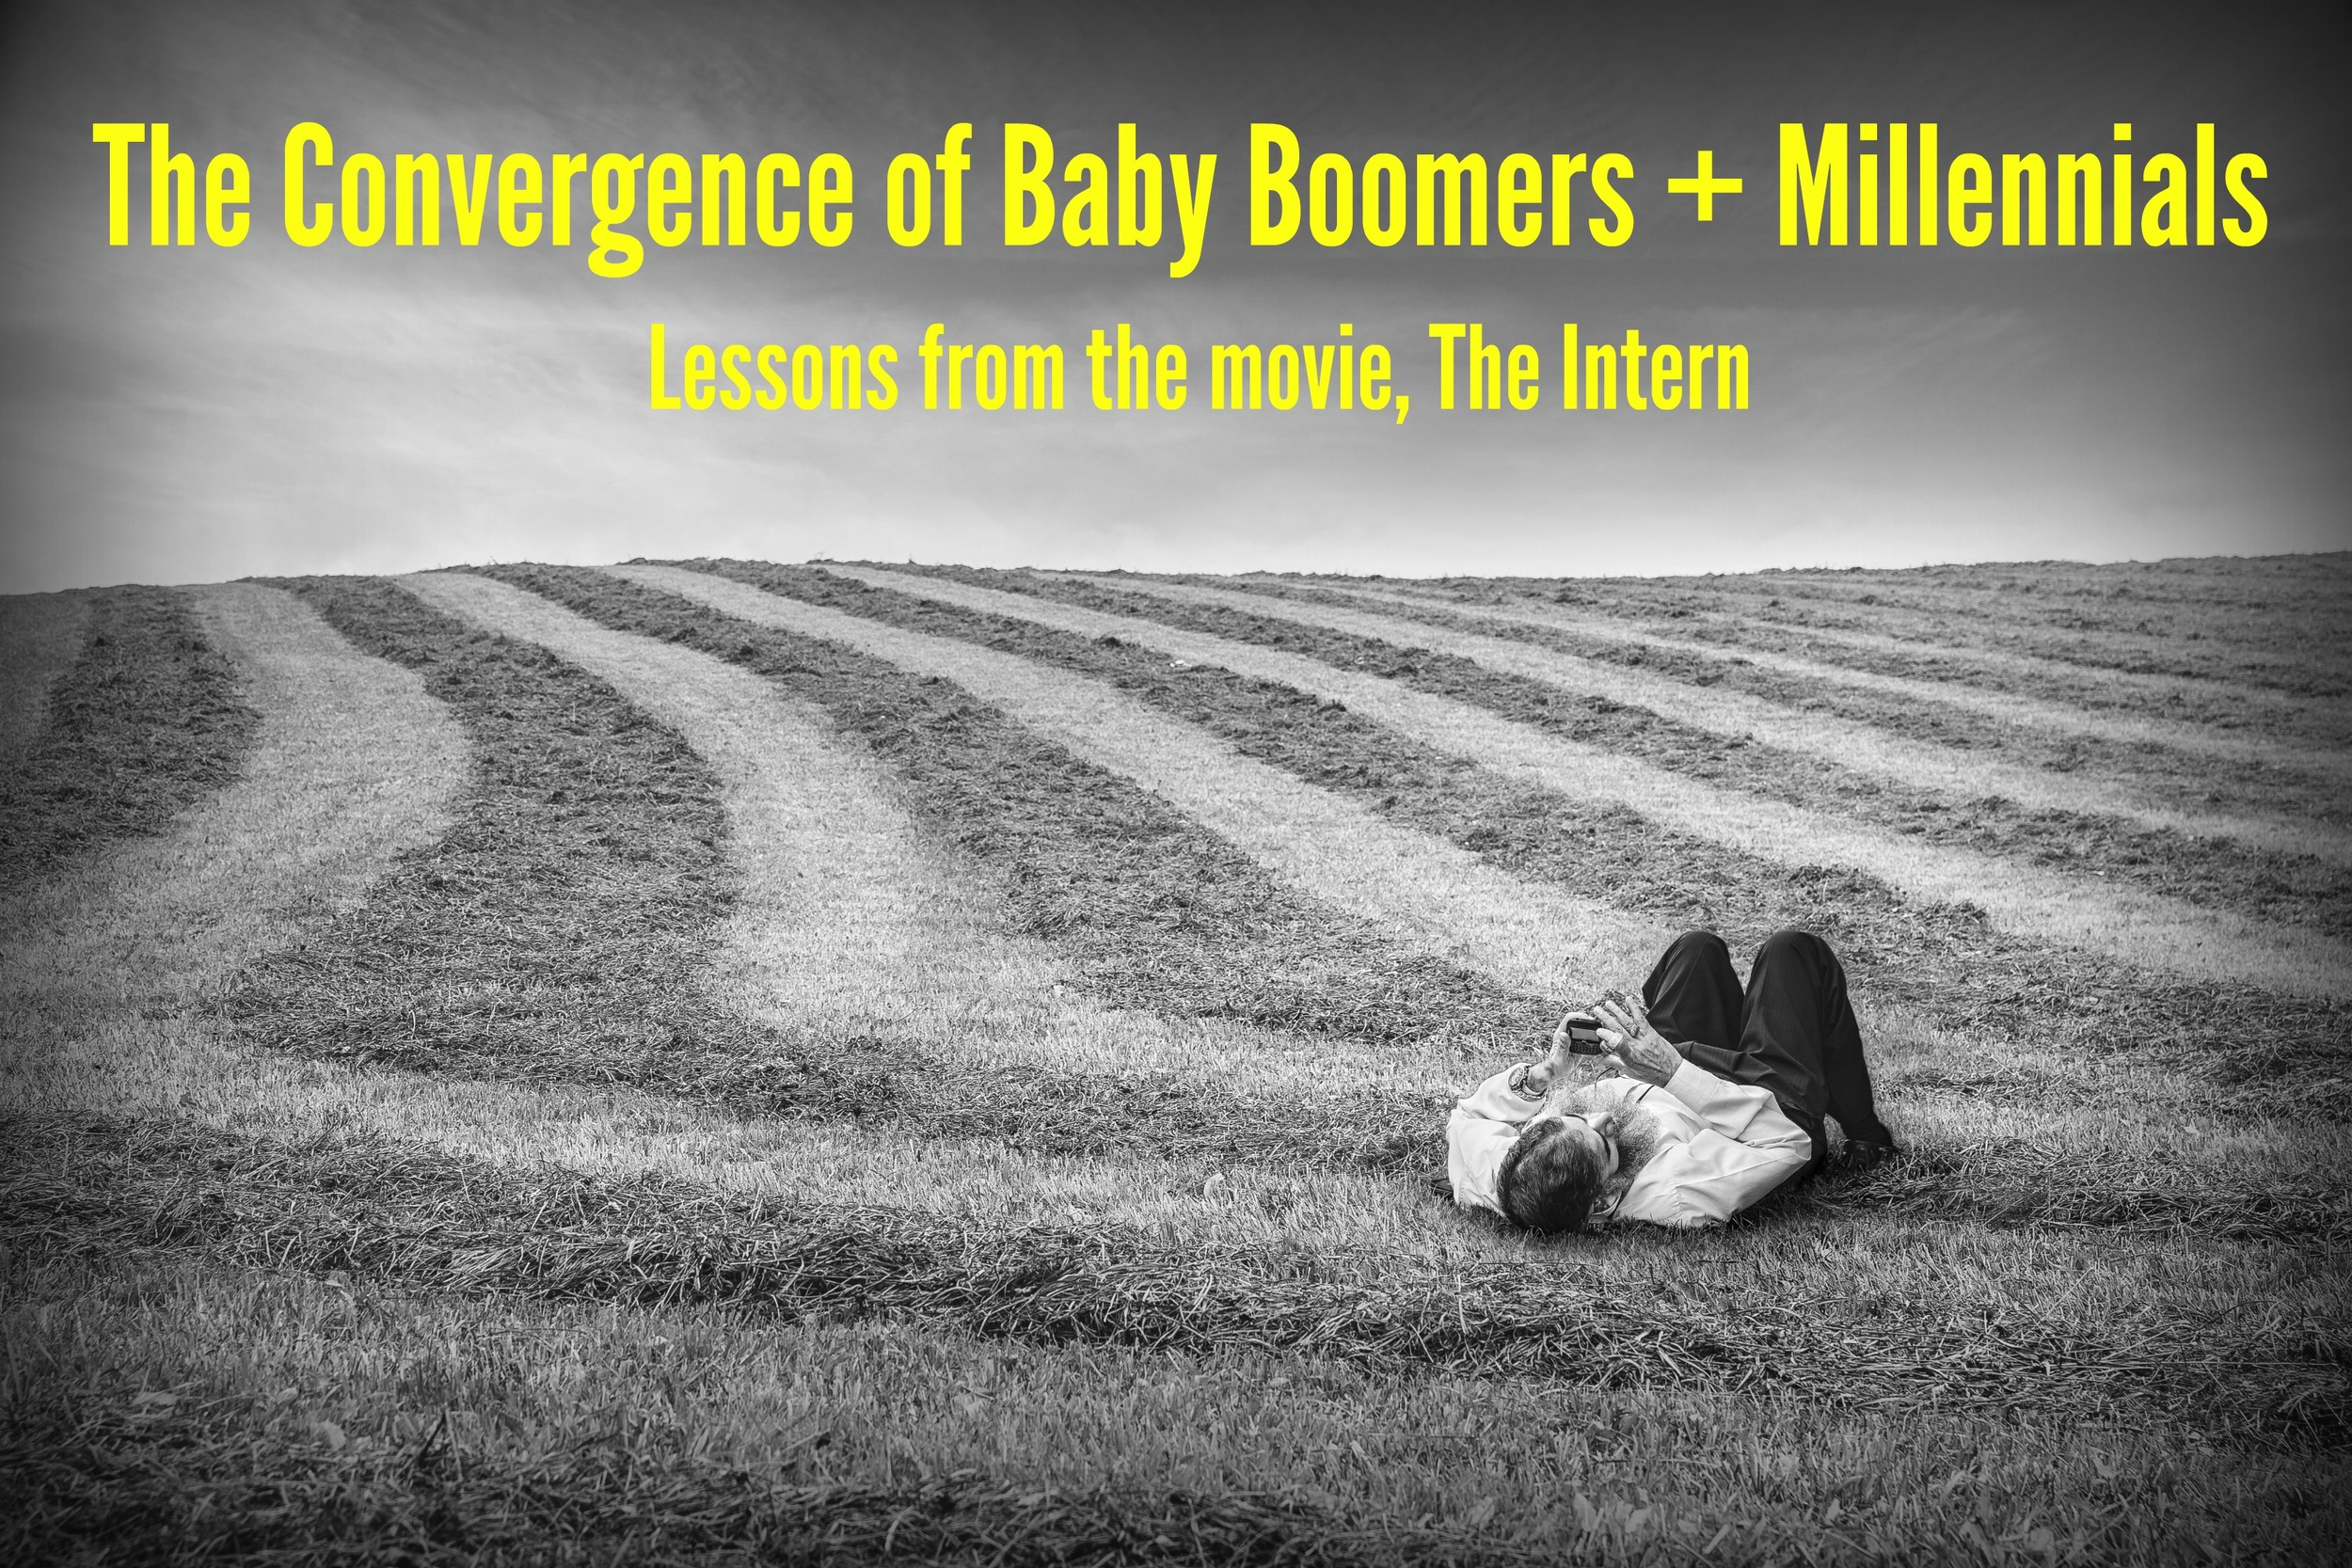 The-convergence-of-baby-boomers-and-millennials-lessons-from-t-he-intern.jpg